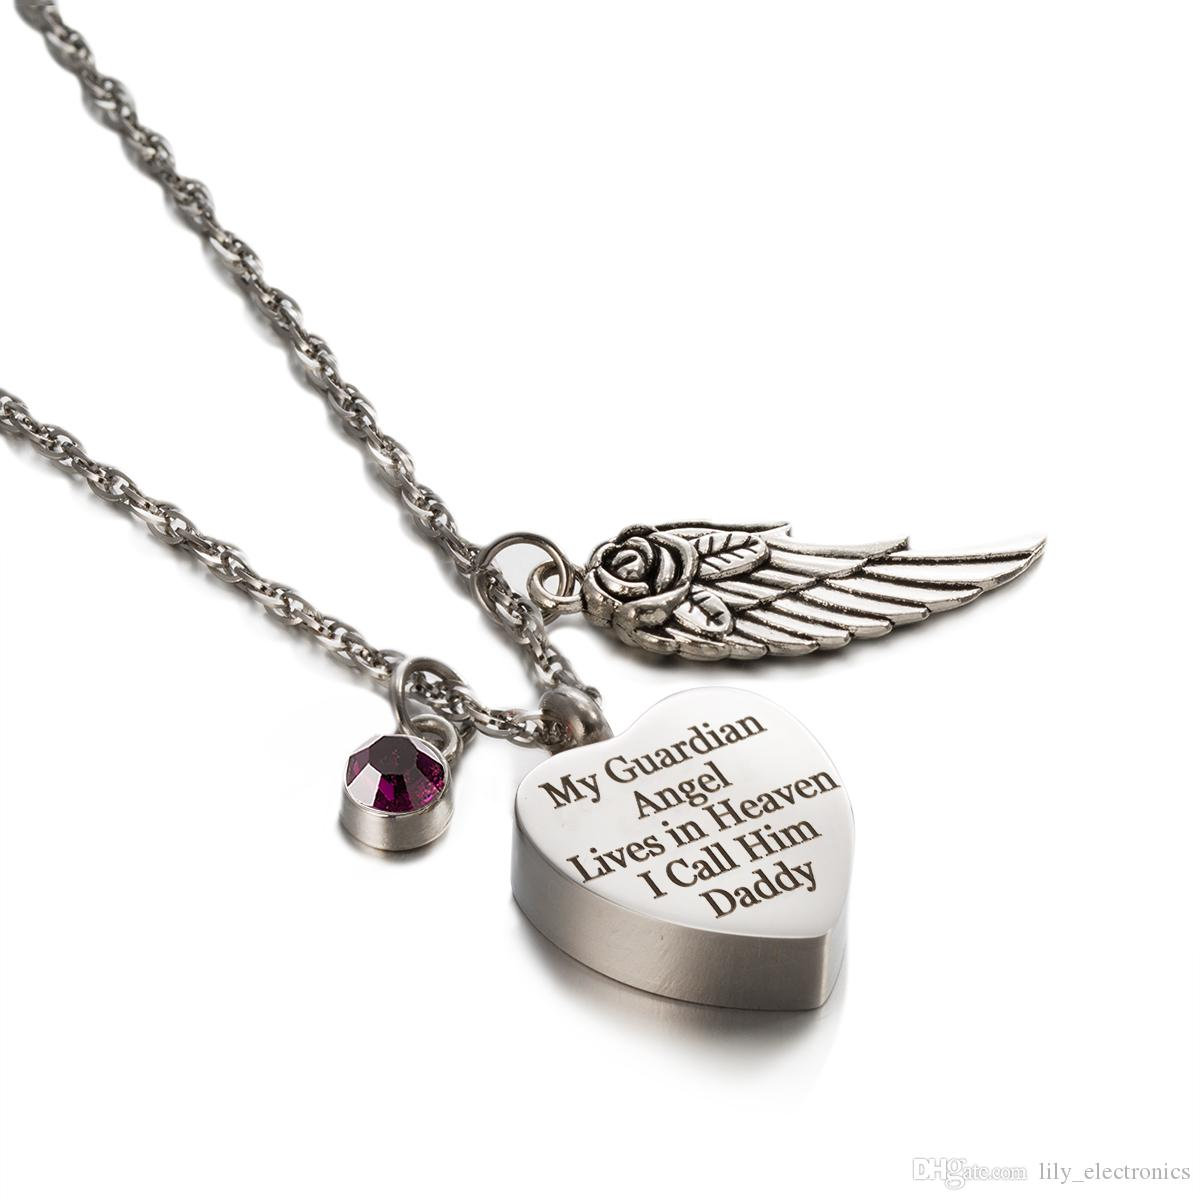 8f5107c0846 Wholesale Cremation Urn Jewelry My Guardian Angel Daddy Heart Keepsake  Memorial Engraved Necklace With Birthstone Angel Wing Charm White Gold  Pendant ...